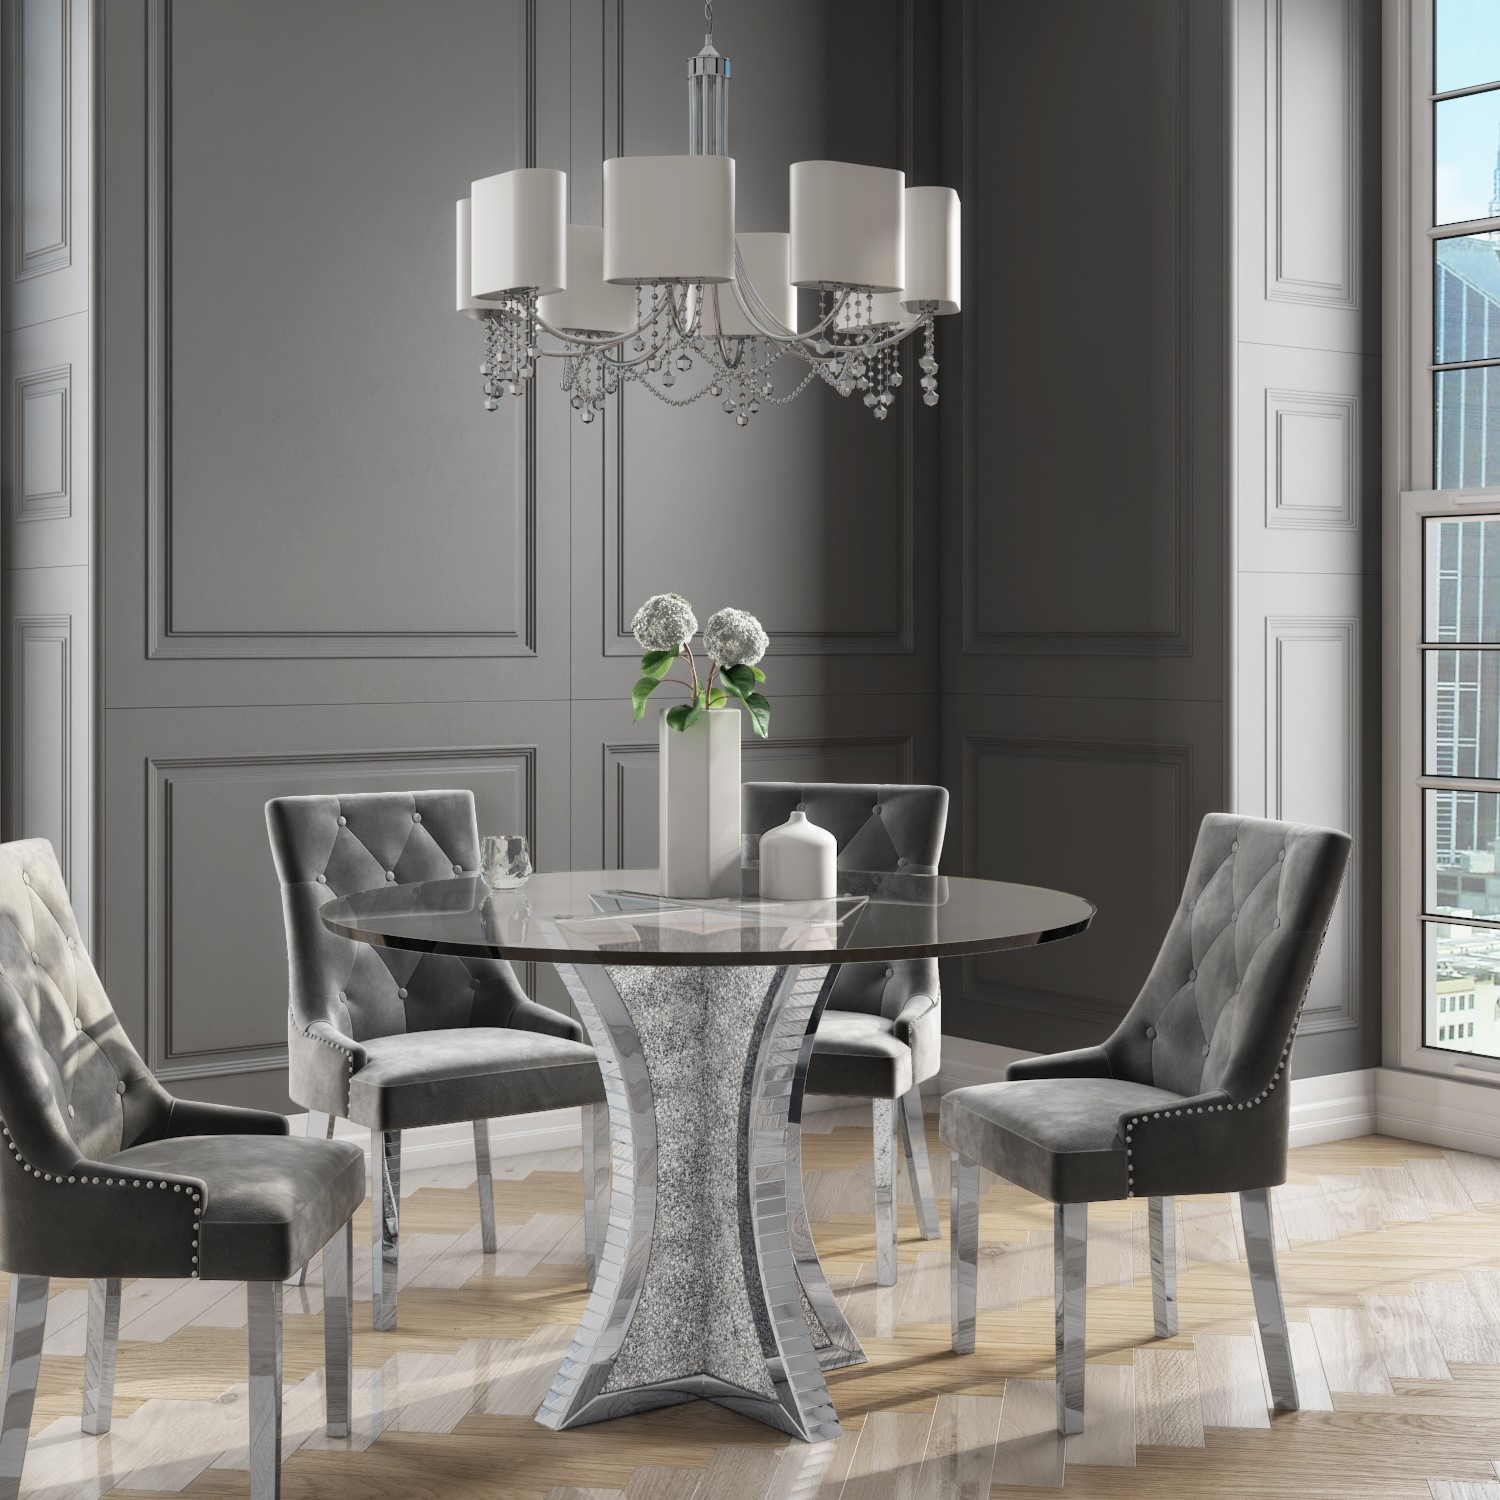 brand new c9404 31538 Round Mirrored Dining Table with Glass Top & Crushed Diamond Effect - Seats  4 - Jade Boutique